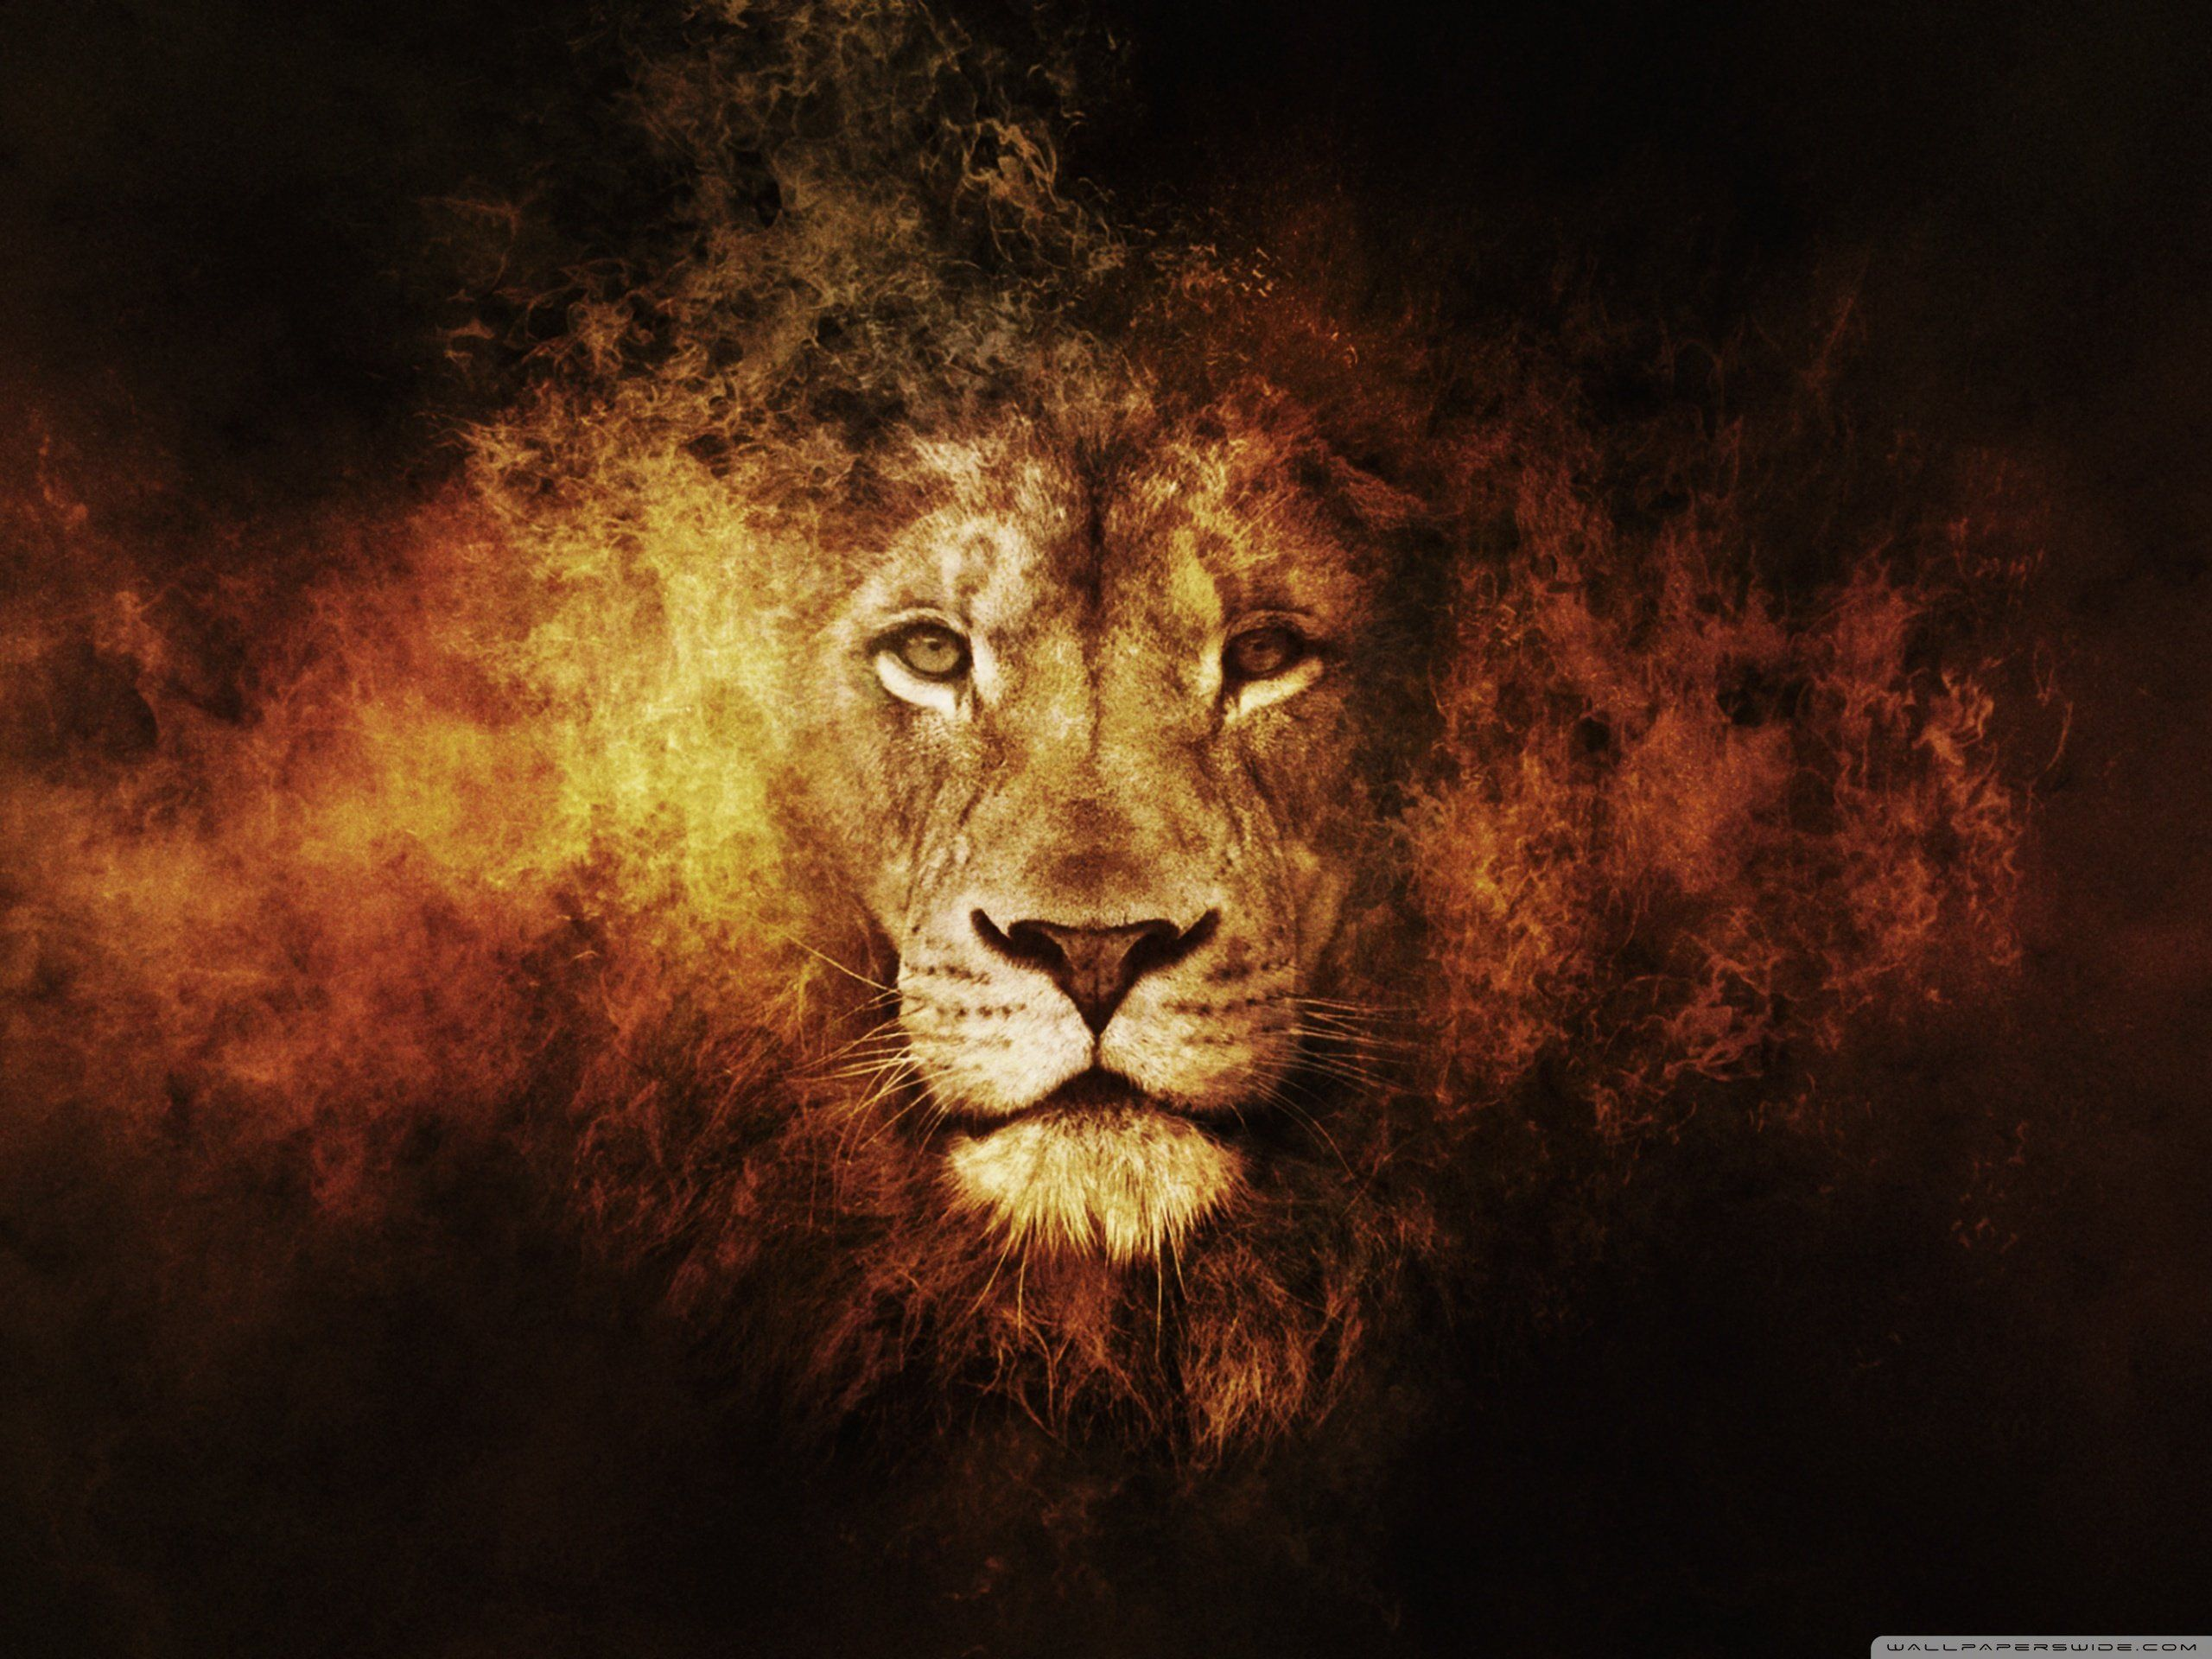 Foundation 5 background image - Jpg 2560x1920 Lions In Smoke Background